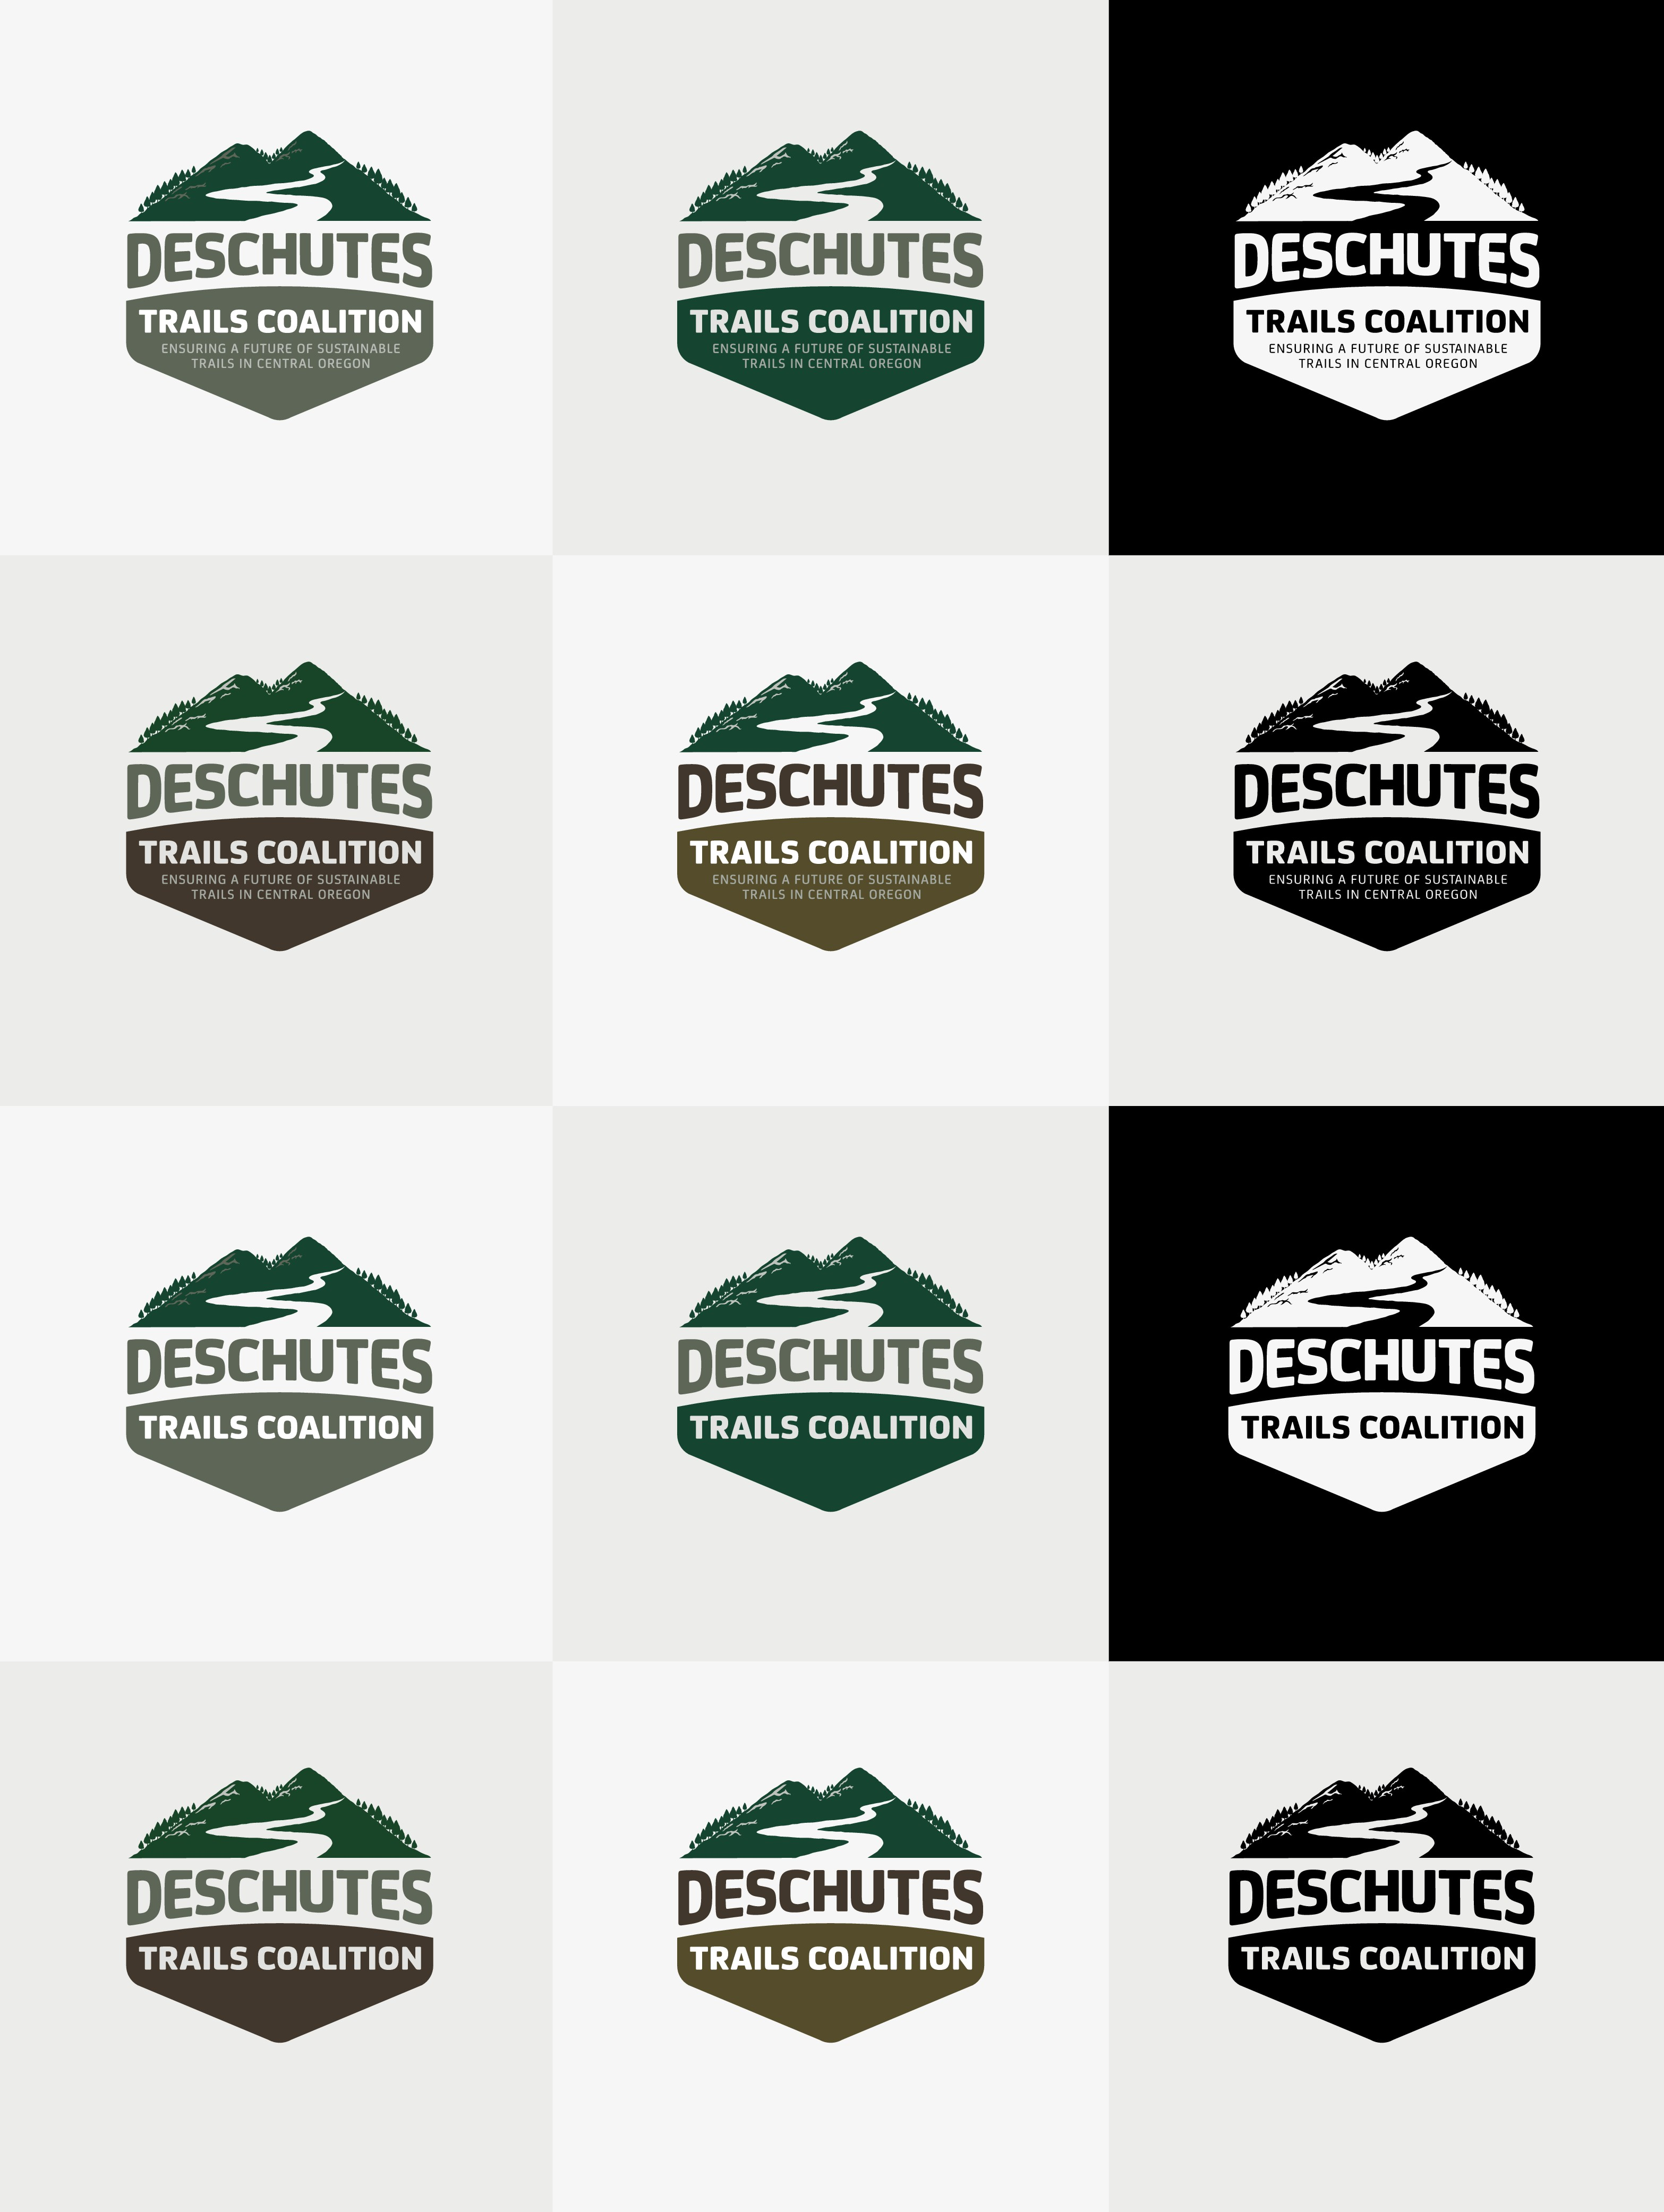 Design a logo for environmental non-profit focused on ensuring sustainable trails in Central Oregon